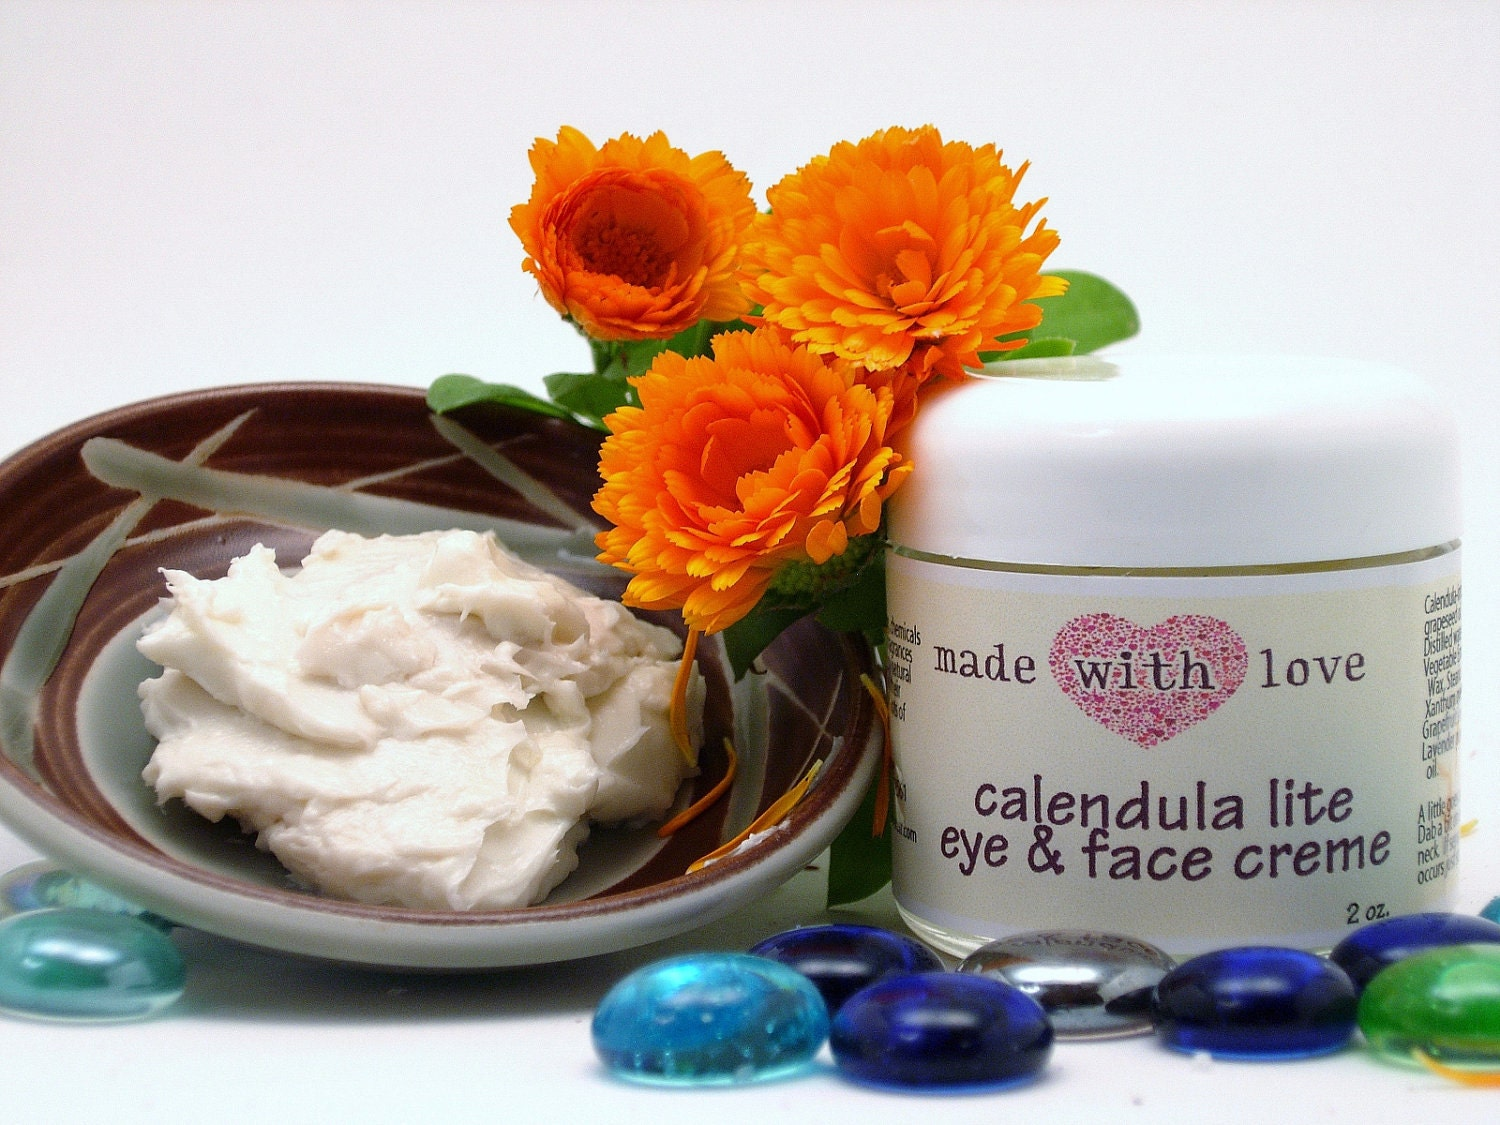 Calendula Lite Eye & Face Creme-Vegan - naturalskincream